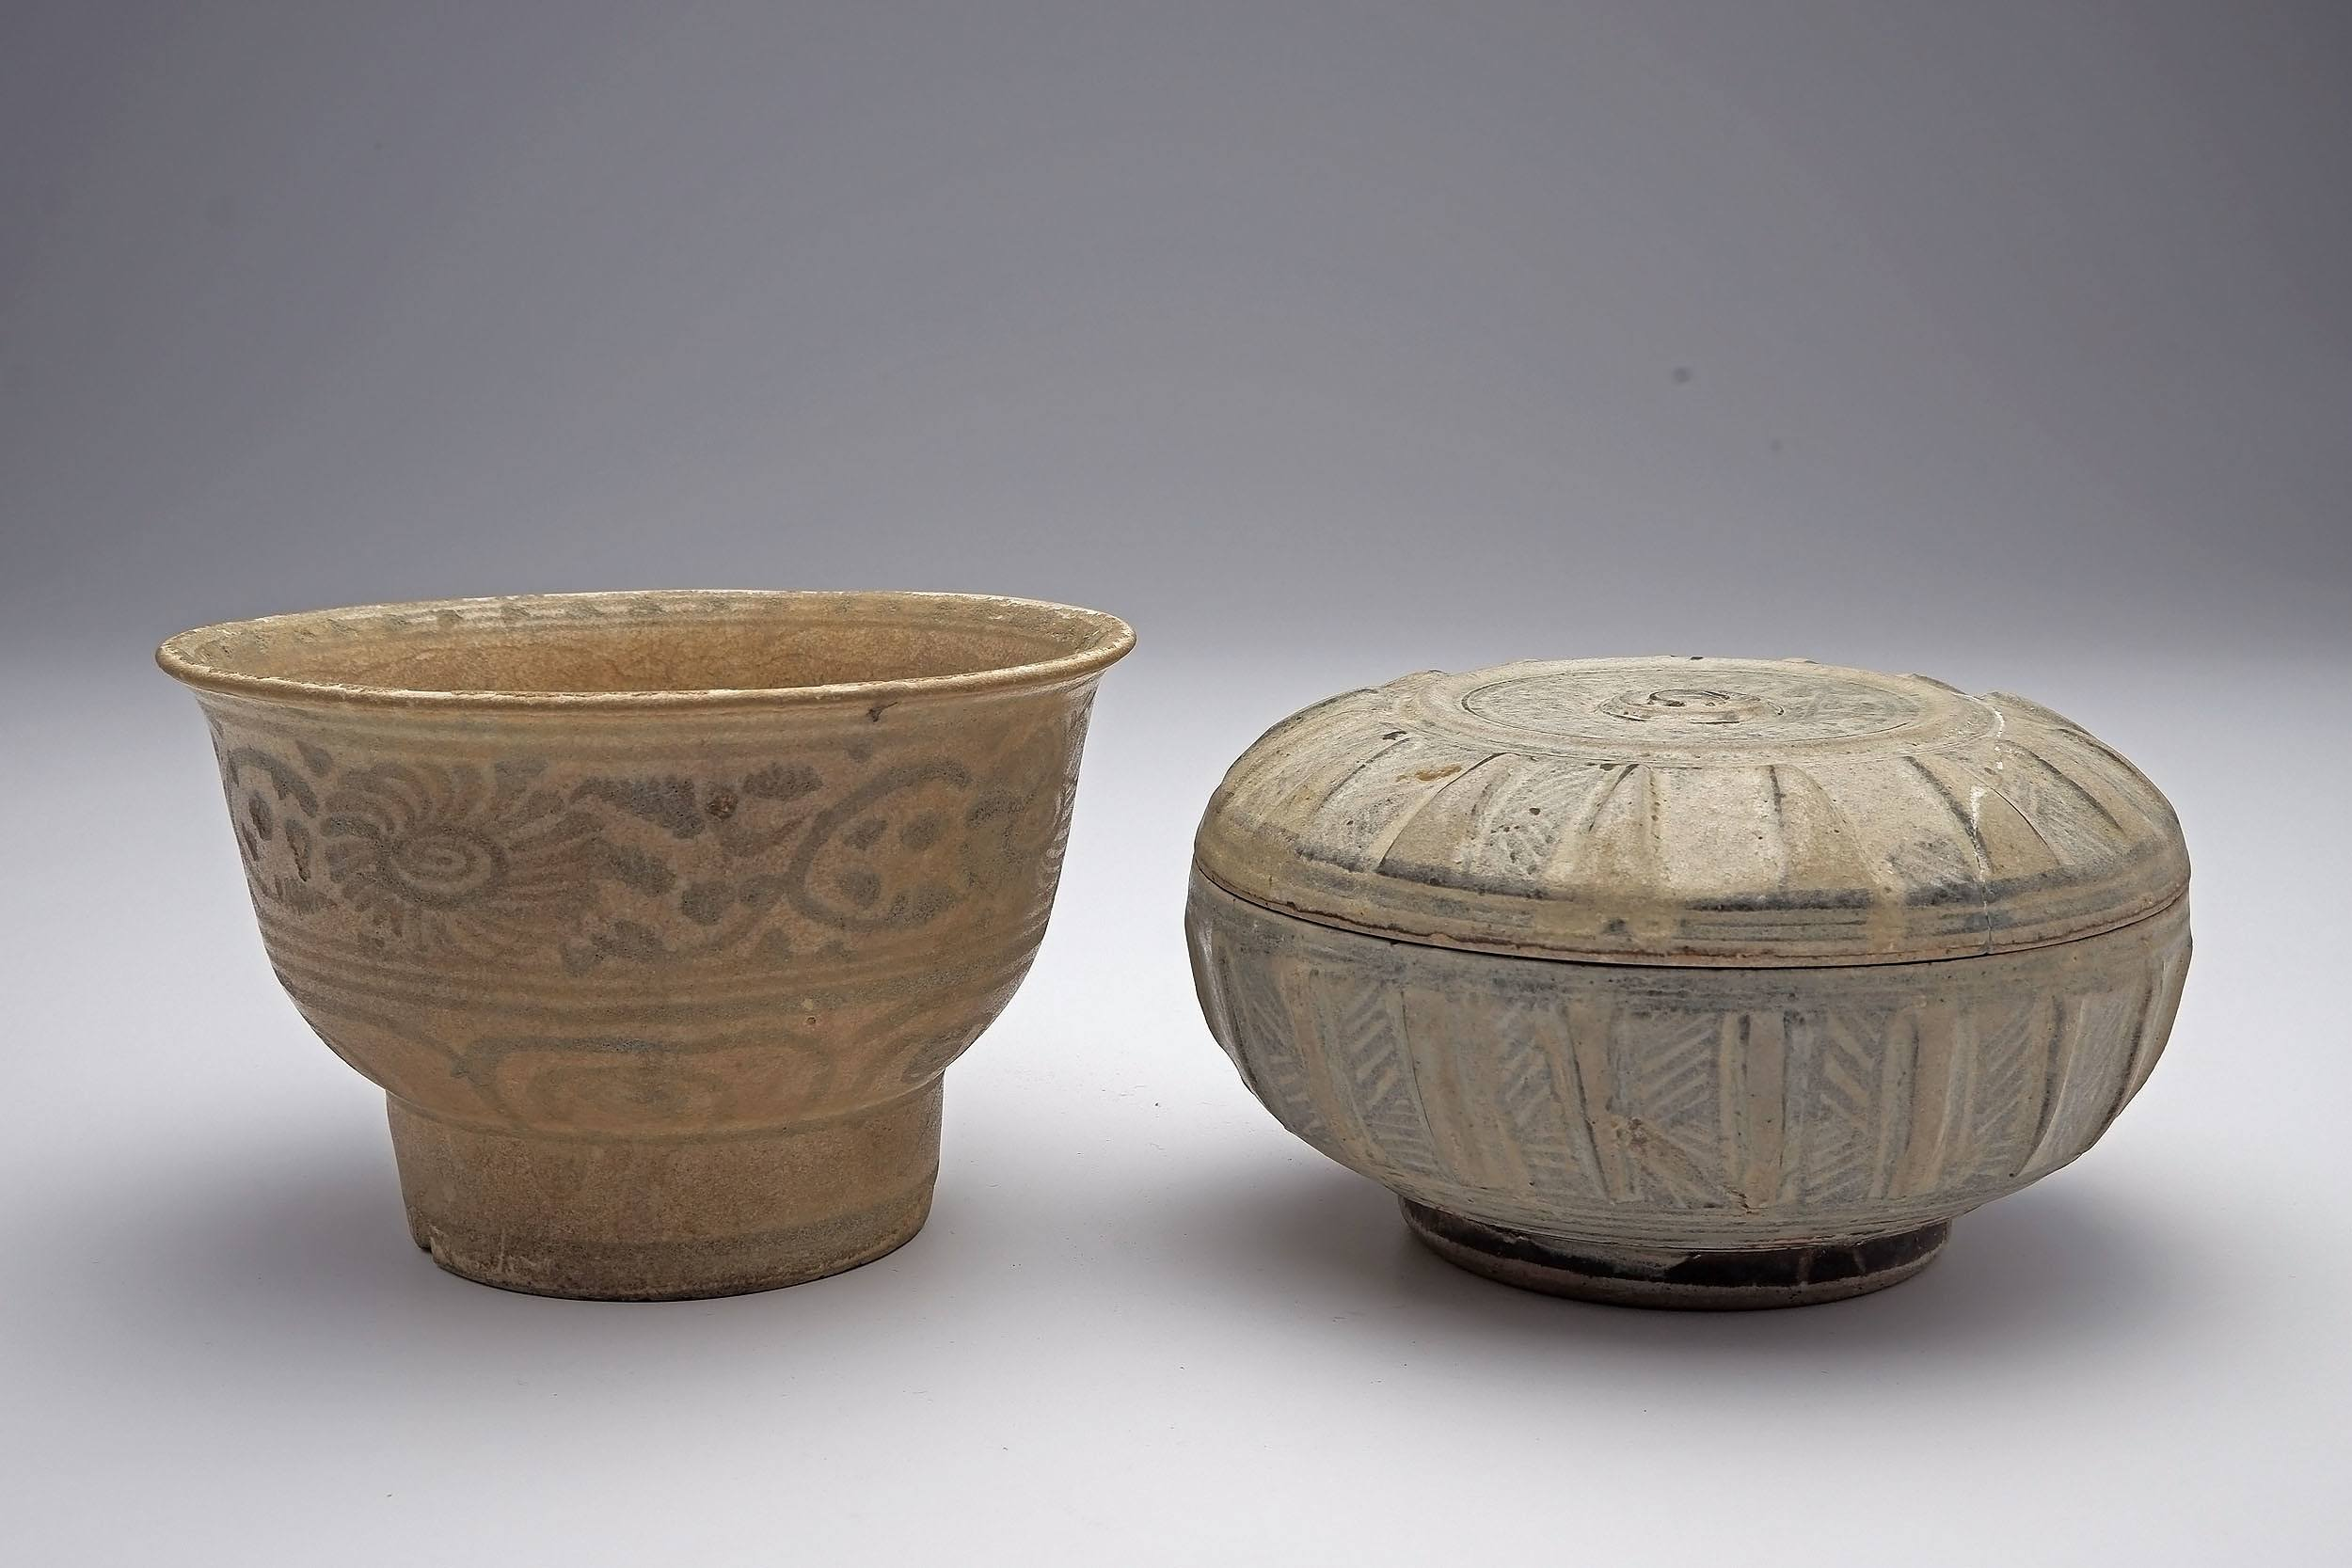 'Annamese High Foot Tea Bowl 16th Century, and Two Thai Sawankhalok Pottery Vessels 14th-16th Century'